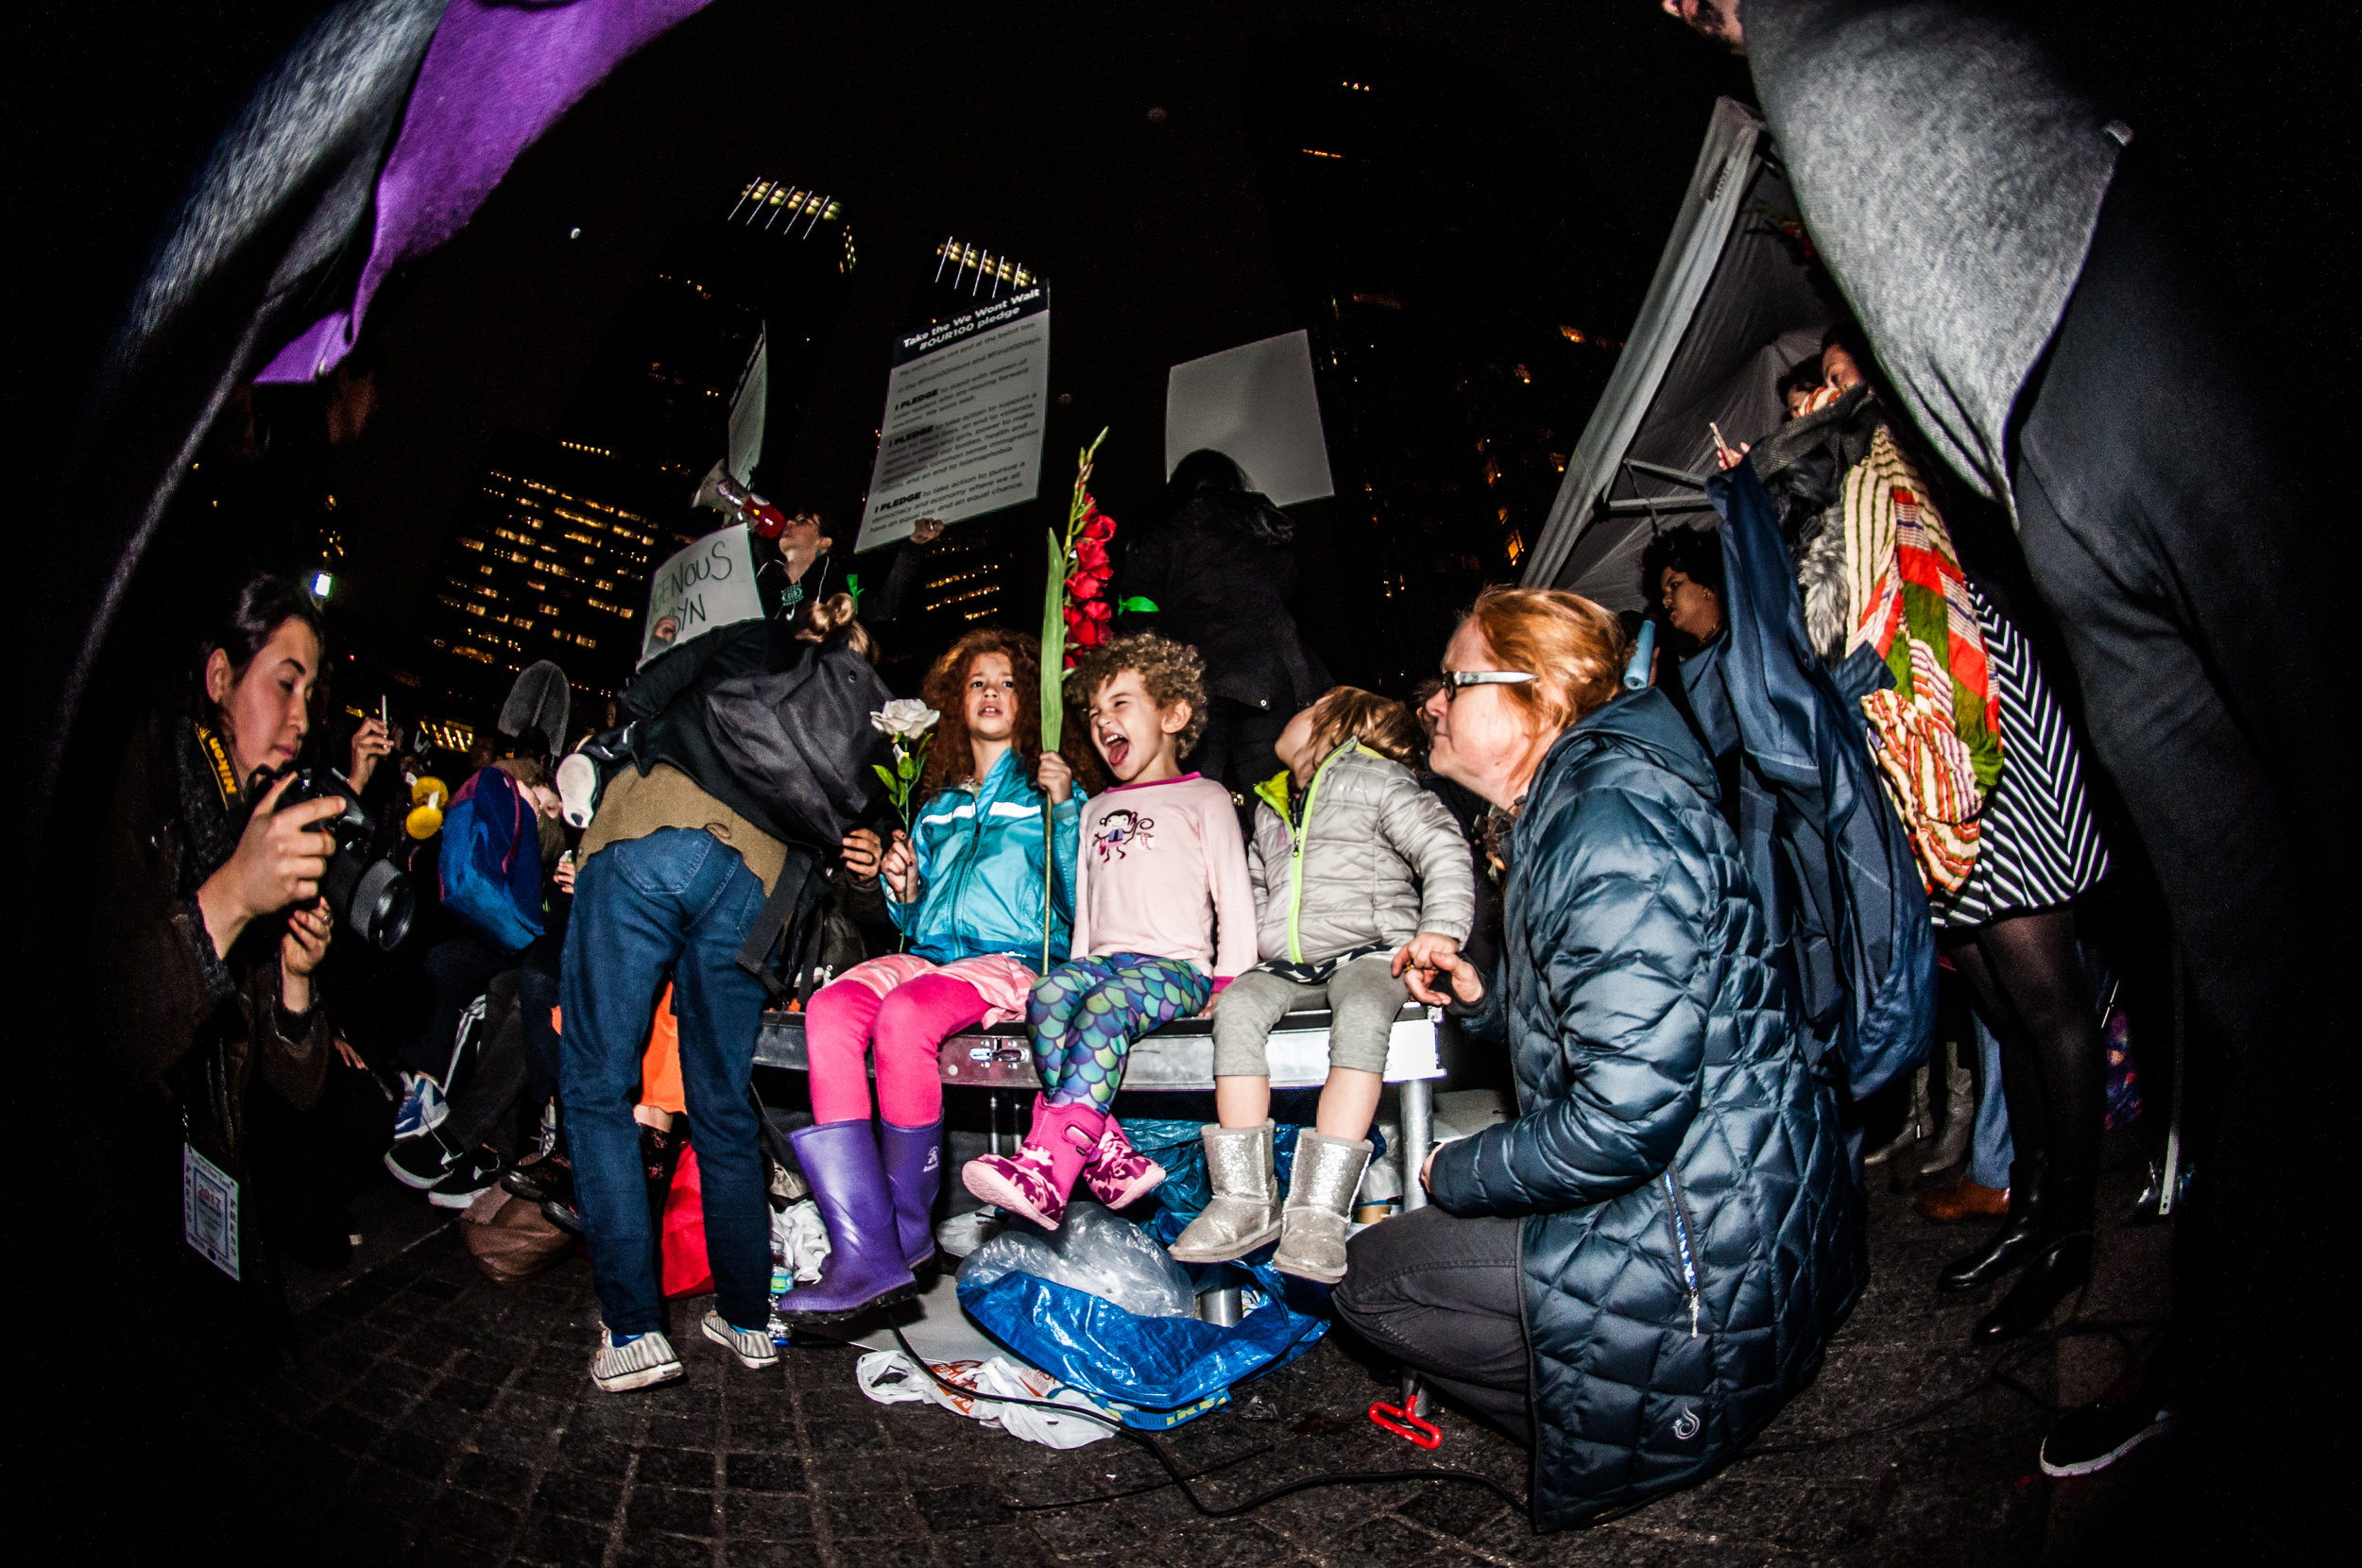 NYC Protests-1-5.jpg